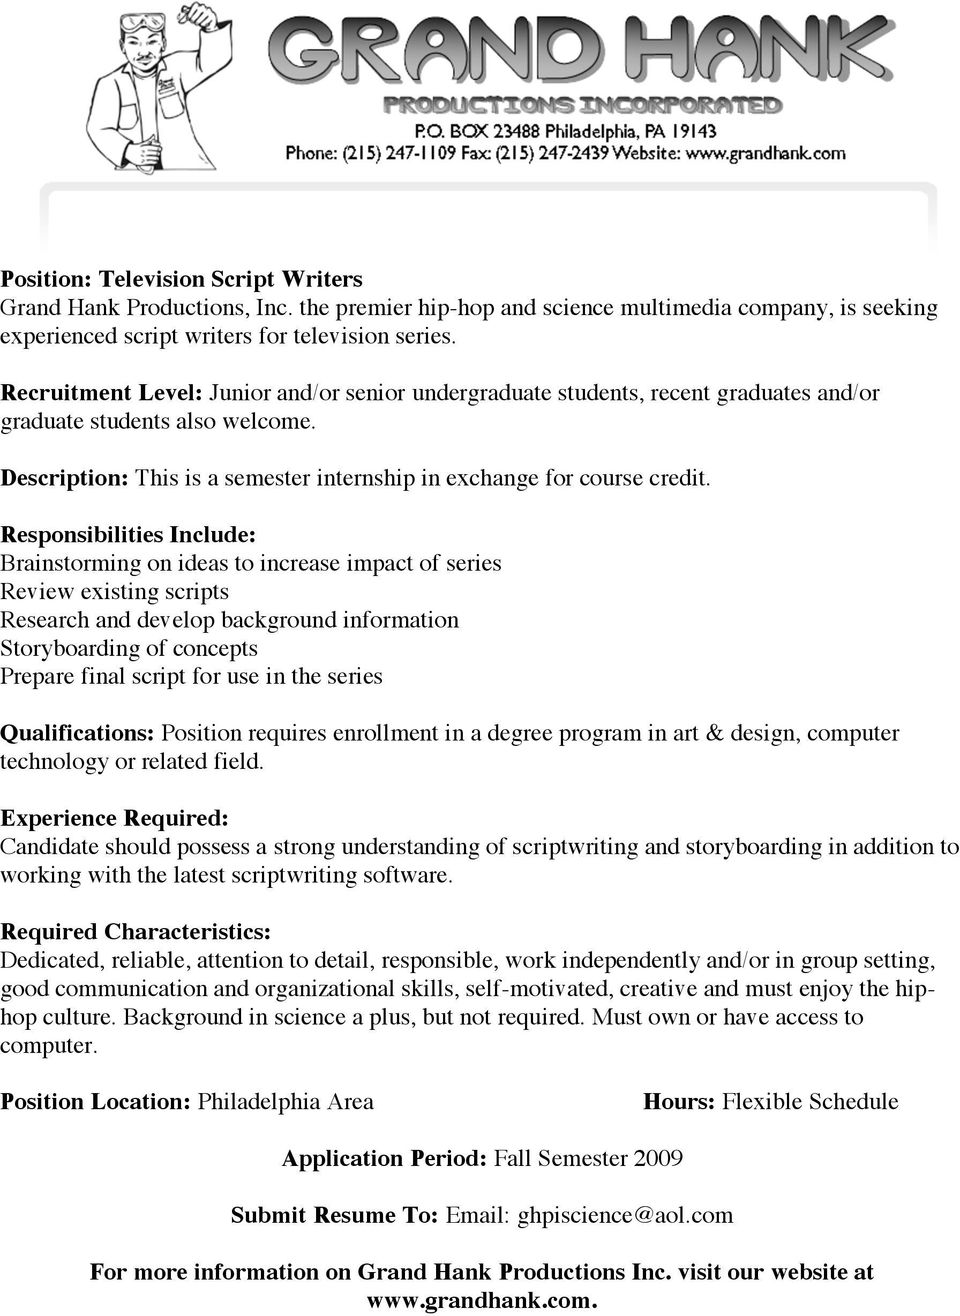 Qualifications: Position requires enrollment in a degree program in art & design, computer technology or related field.